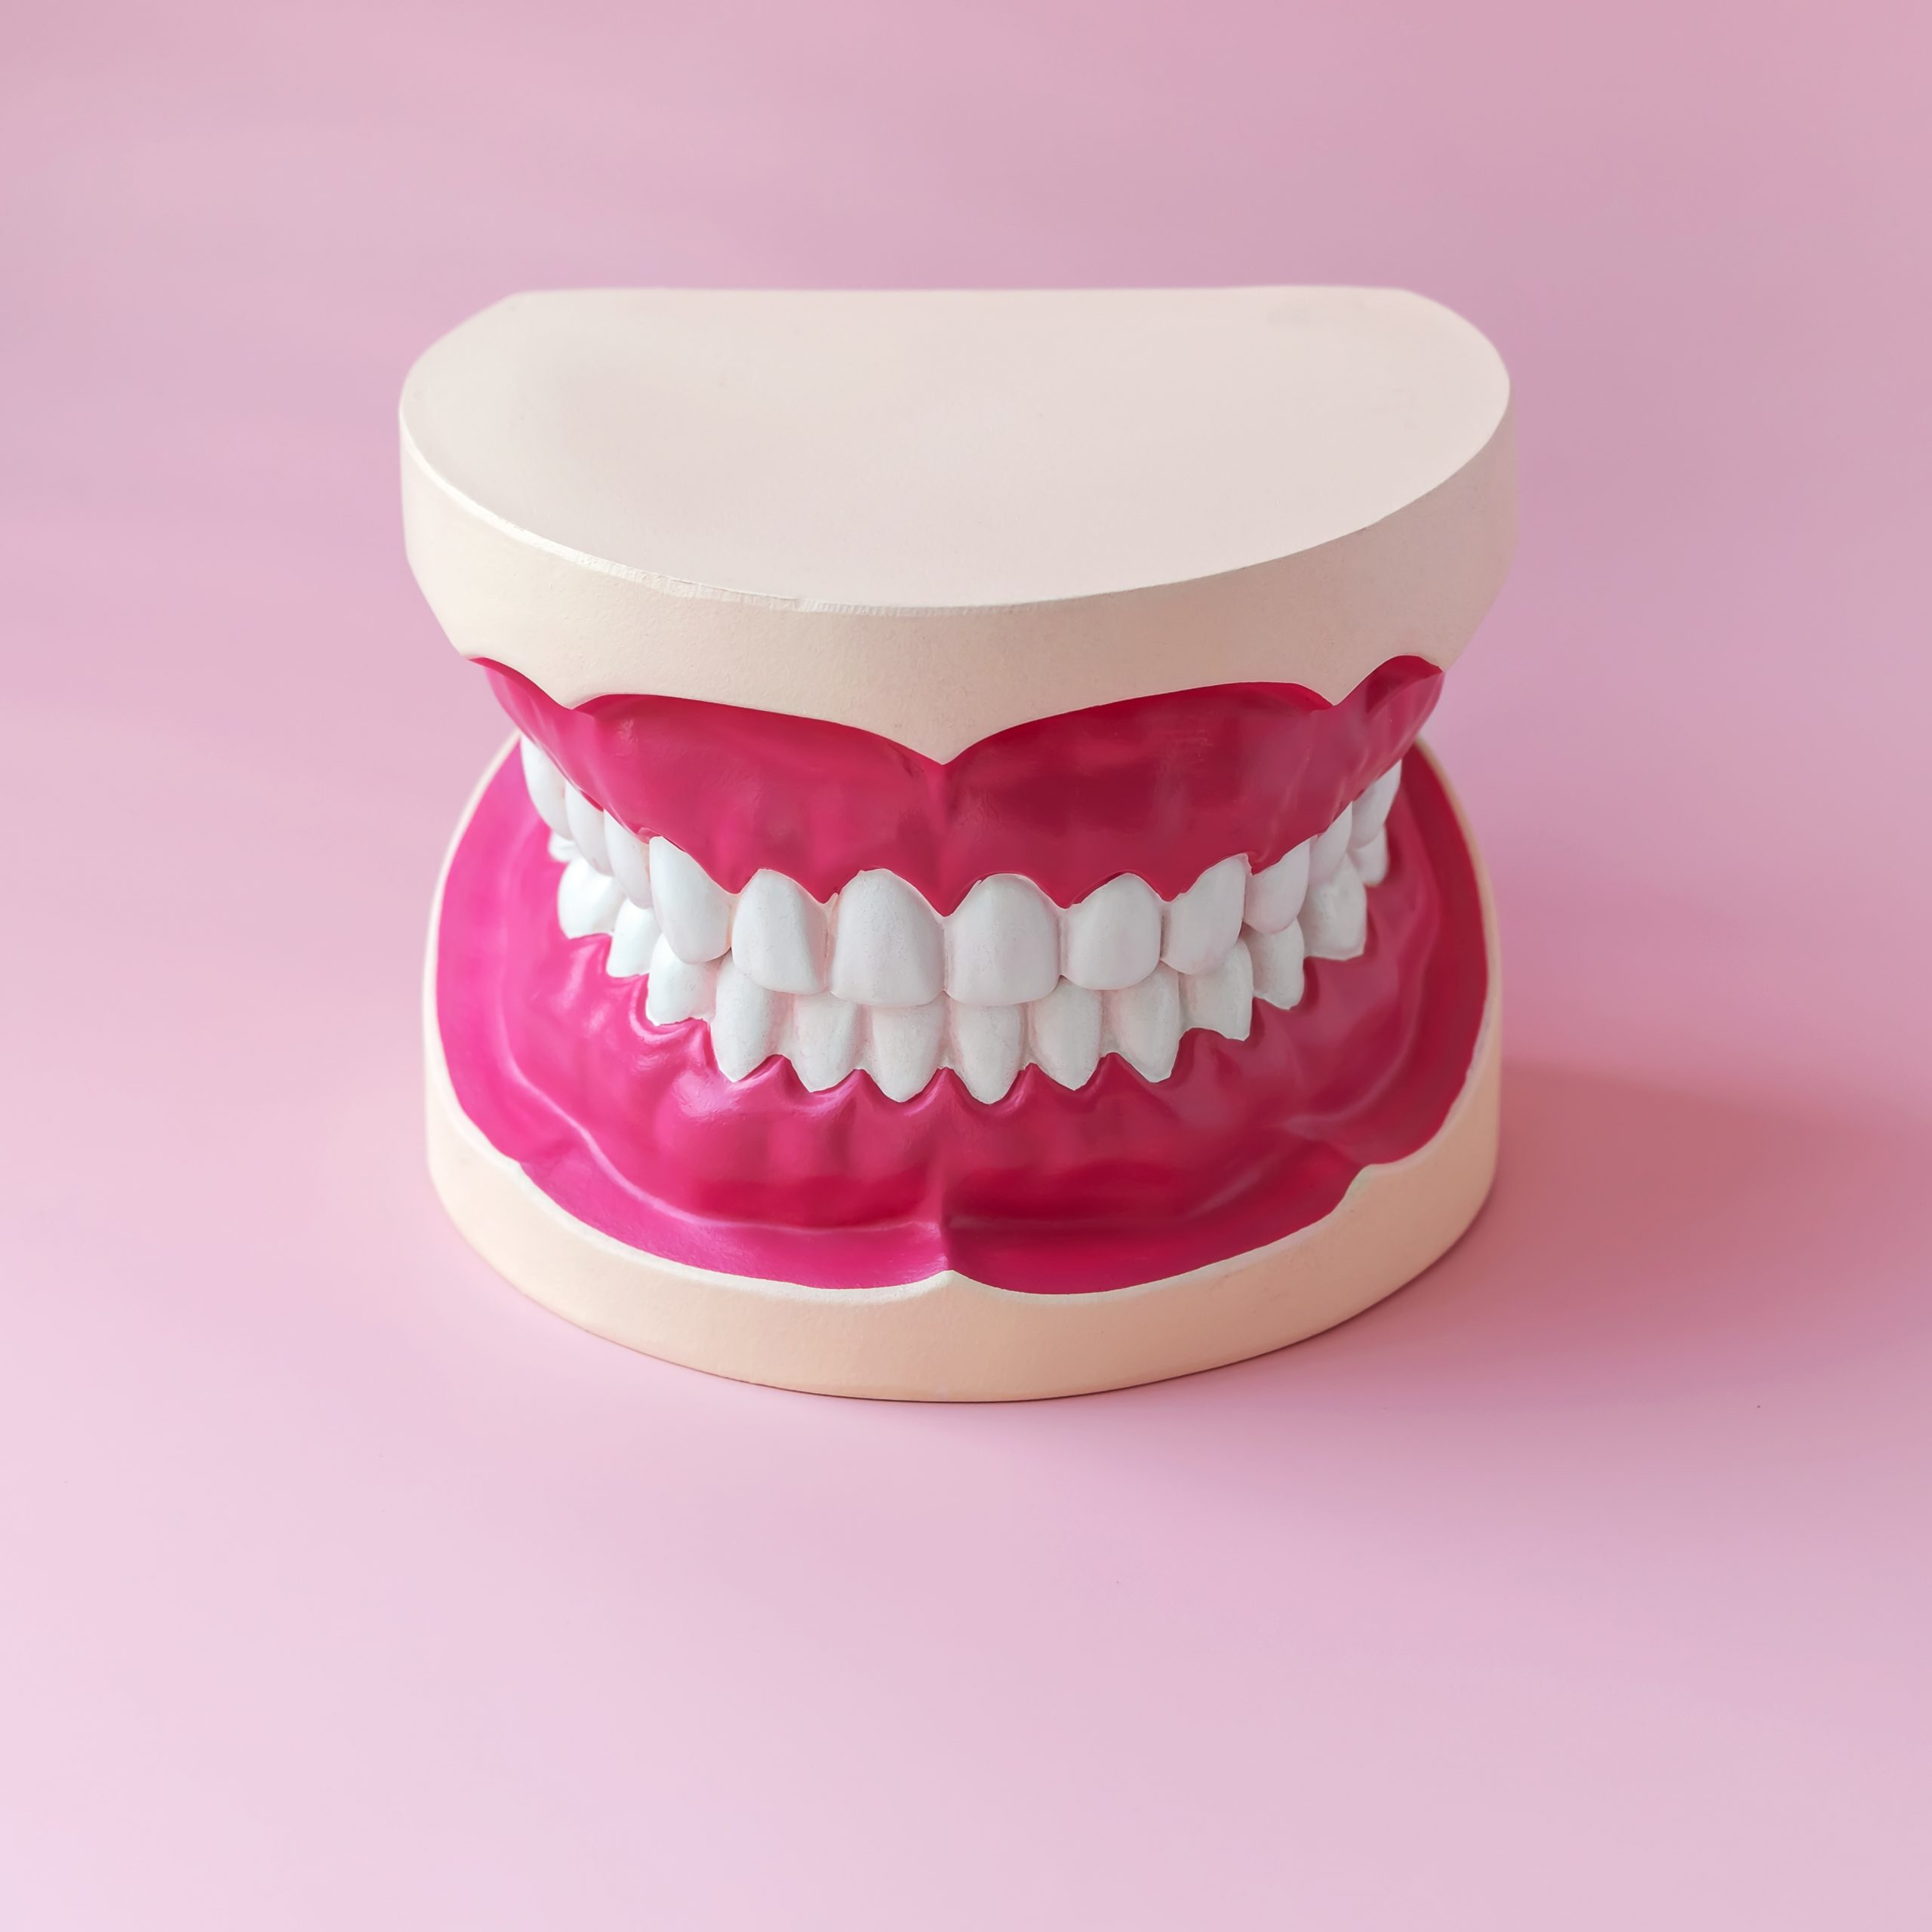 Human jaw mockup with gums and teeth. Study guide for children and students.